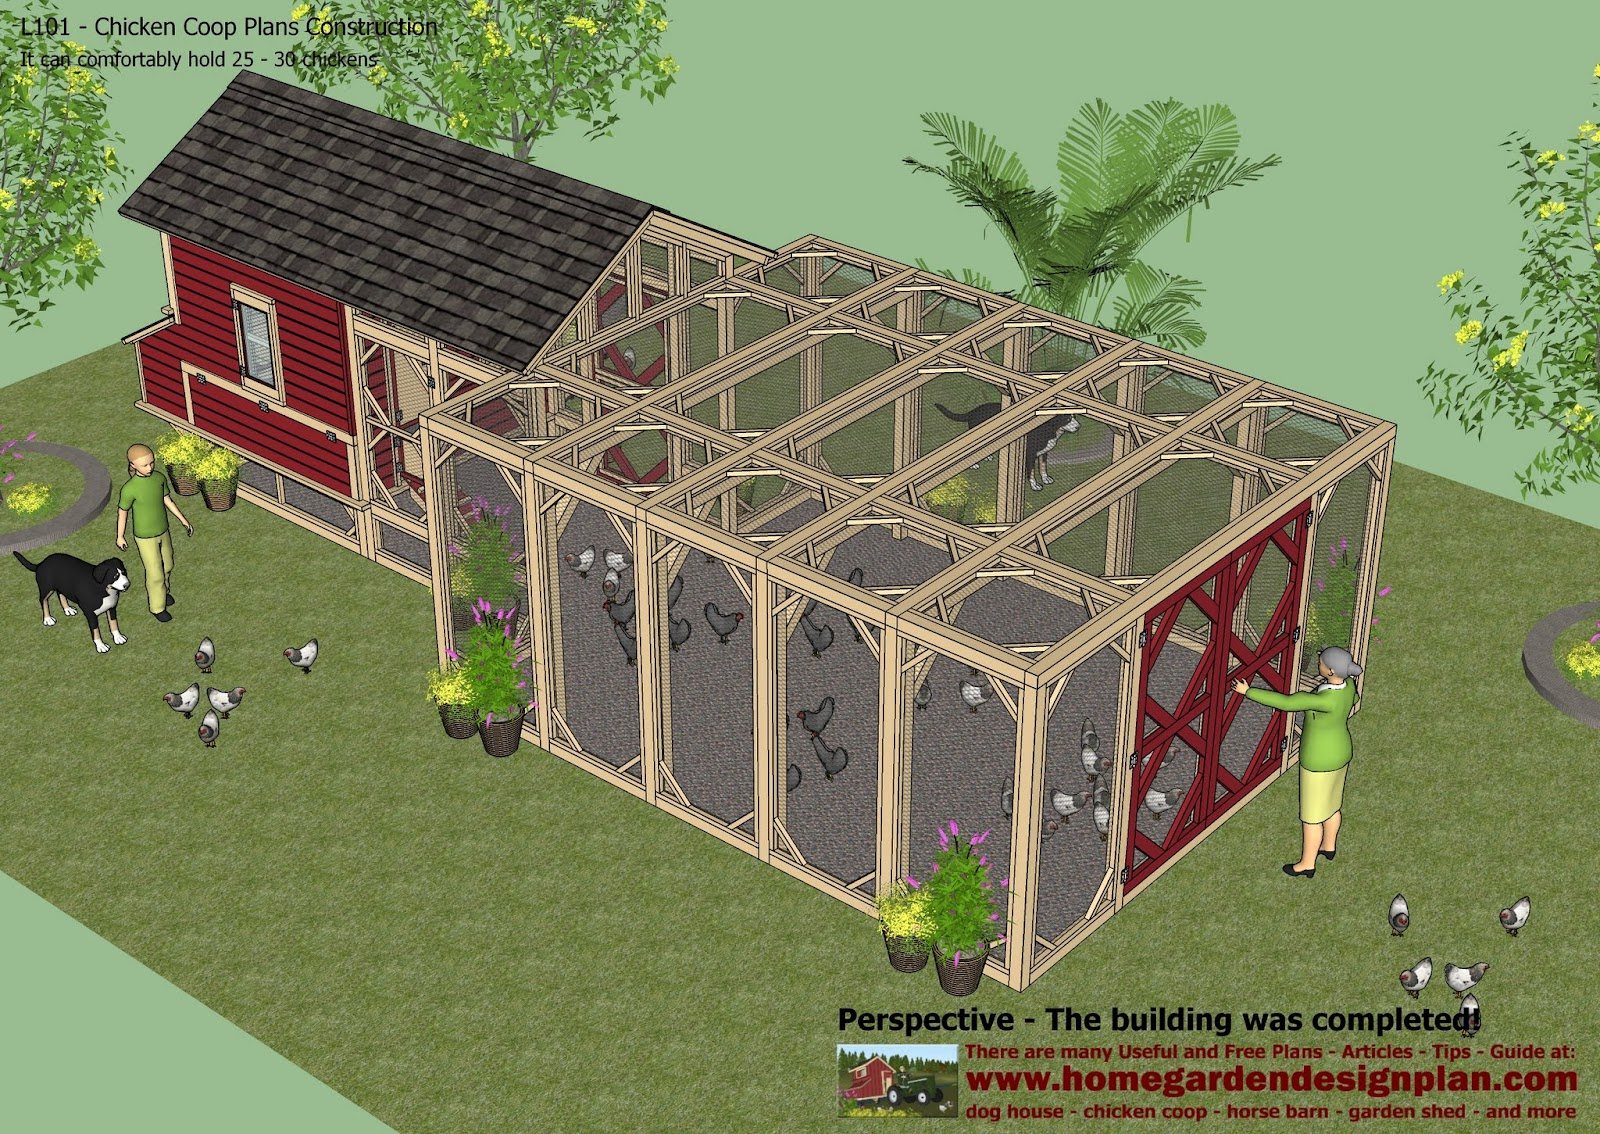 Hens plans how to build a chicken coop for 20 for Plans for a chicken coop for 12 chickens